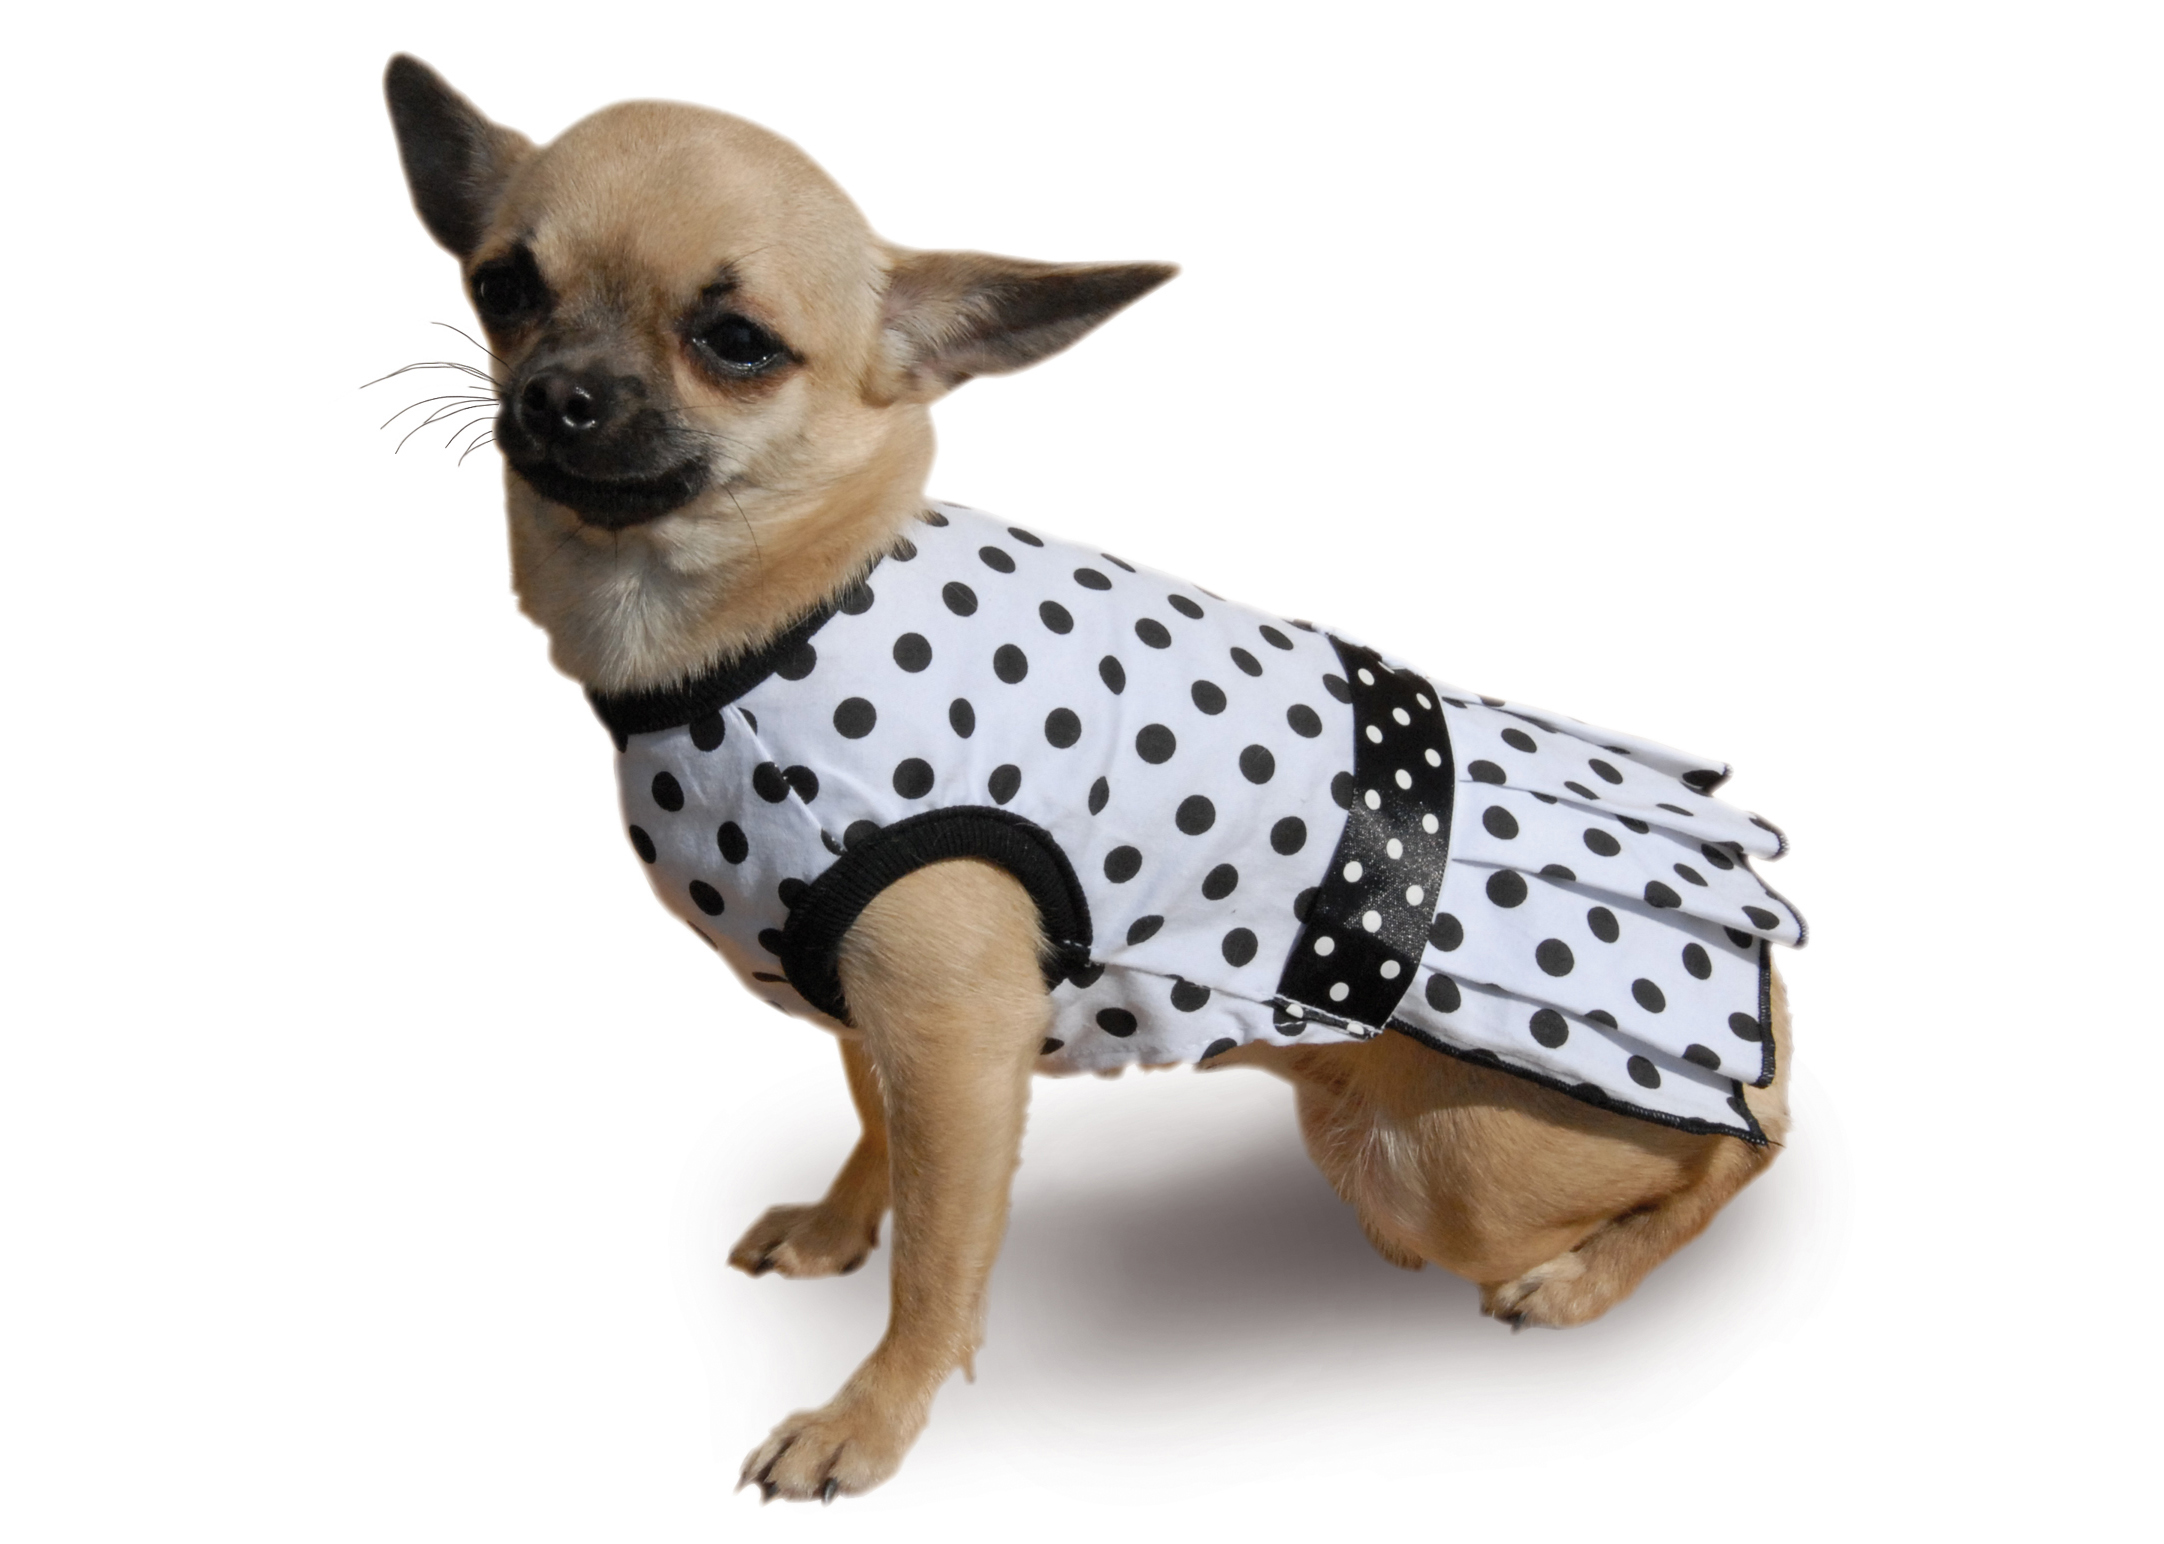 Max+Co Poka Dot Dress Attire For Dogs